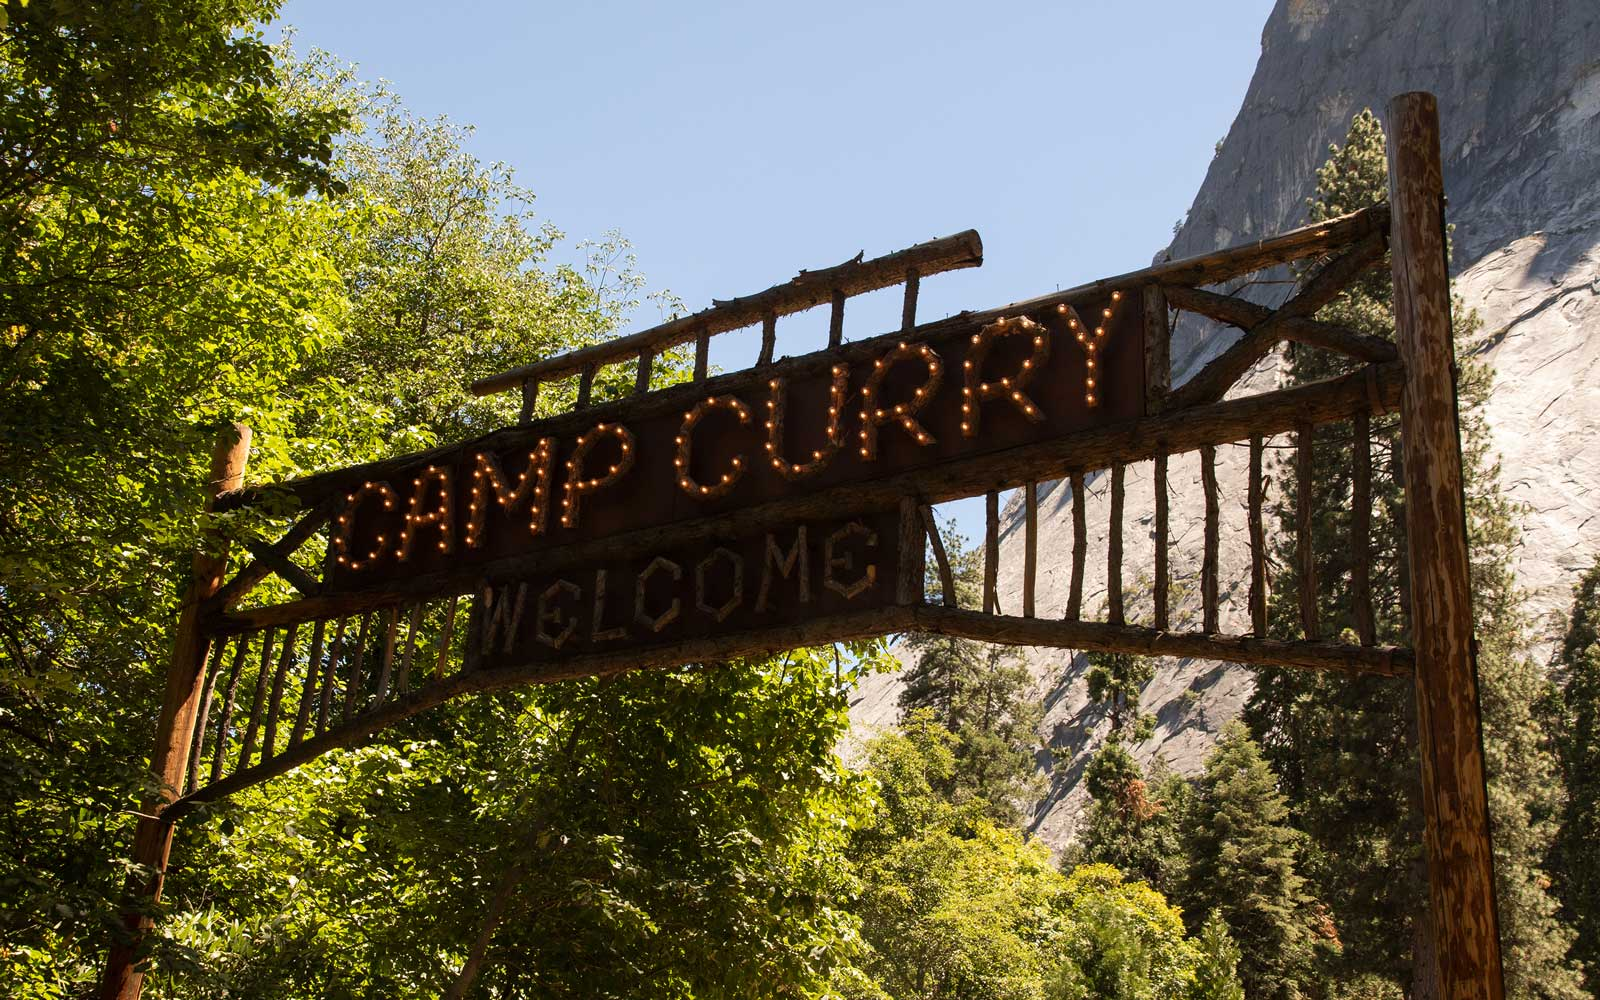 Yosemite National Park, Camp Curry